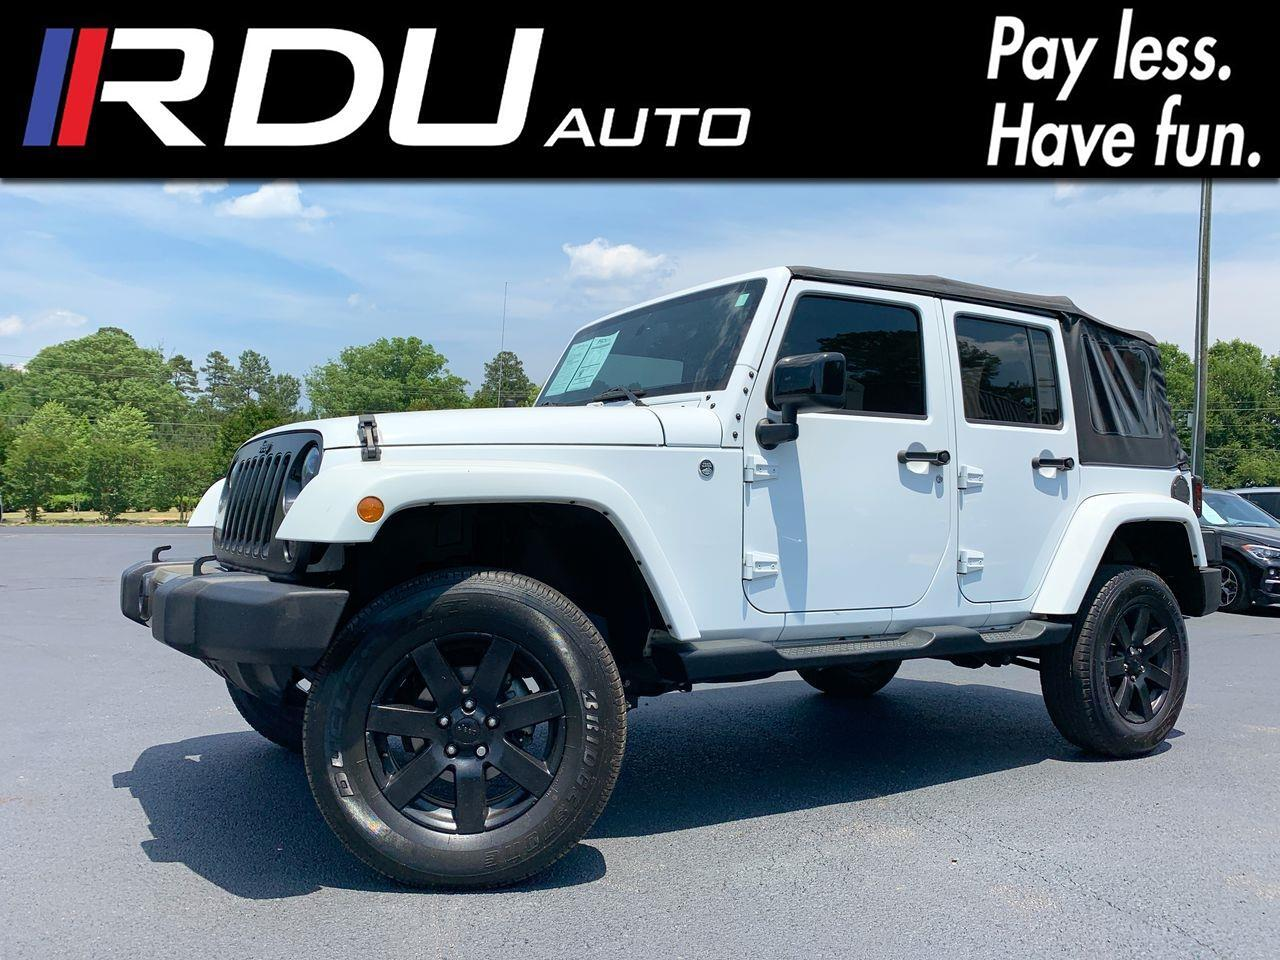 2014 Jeep Wrangler Unlimited Sahara Altitude 4WD